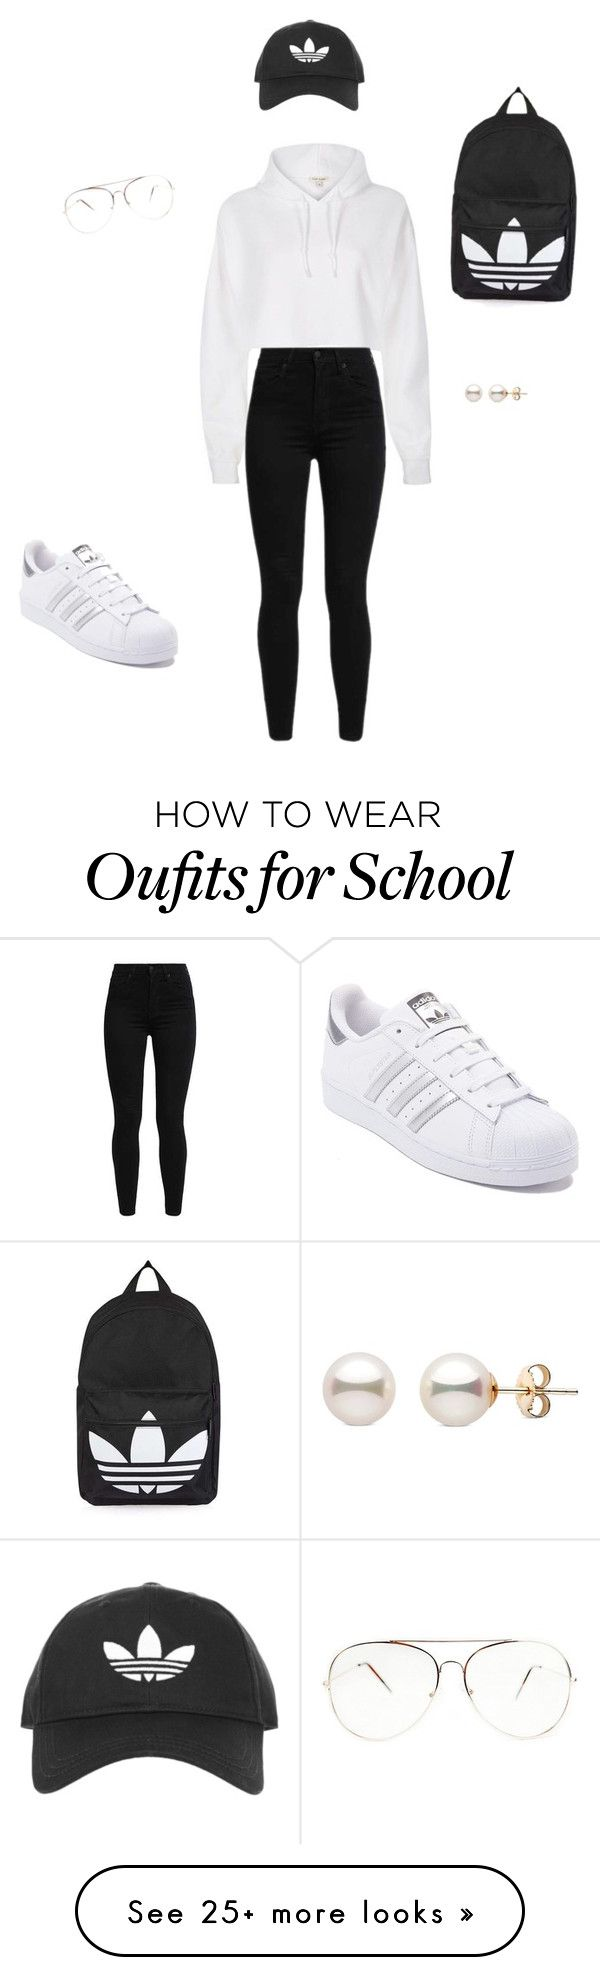 """I lil school , or work out look"" by genesisemuedue on Polyvore featuring River Island, Topshop, Levi's and adidas"